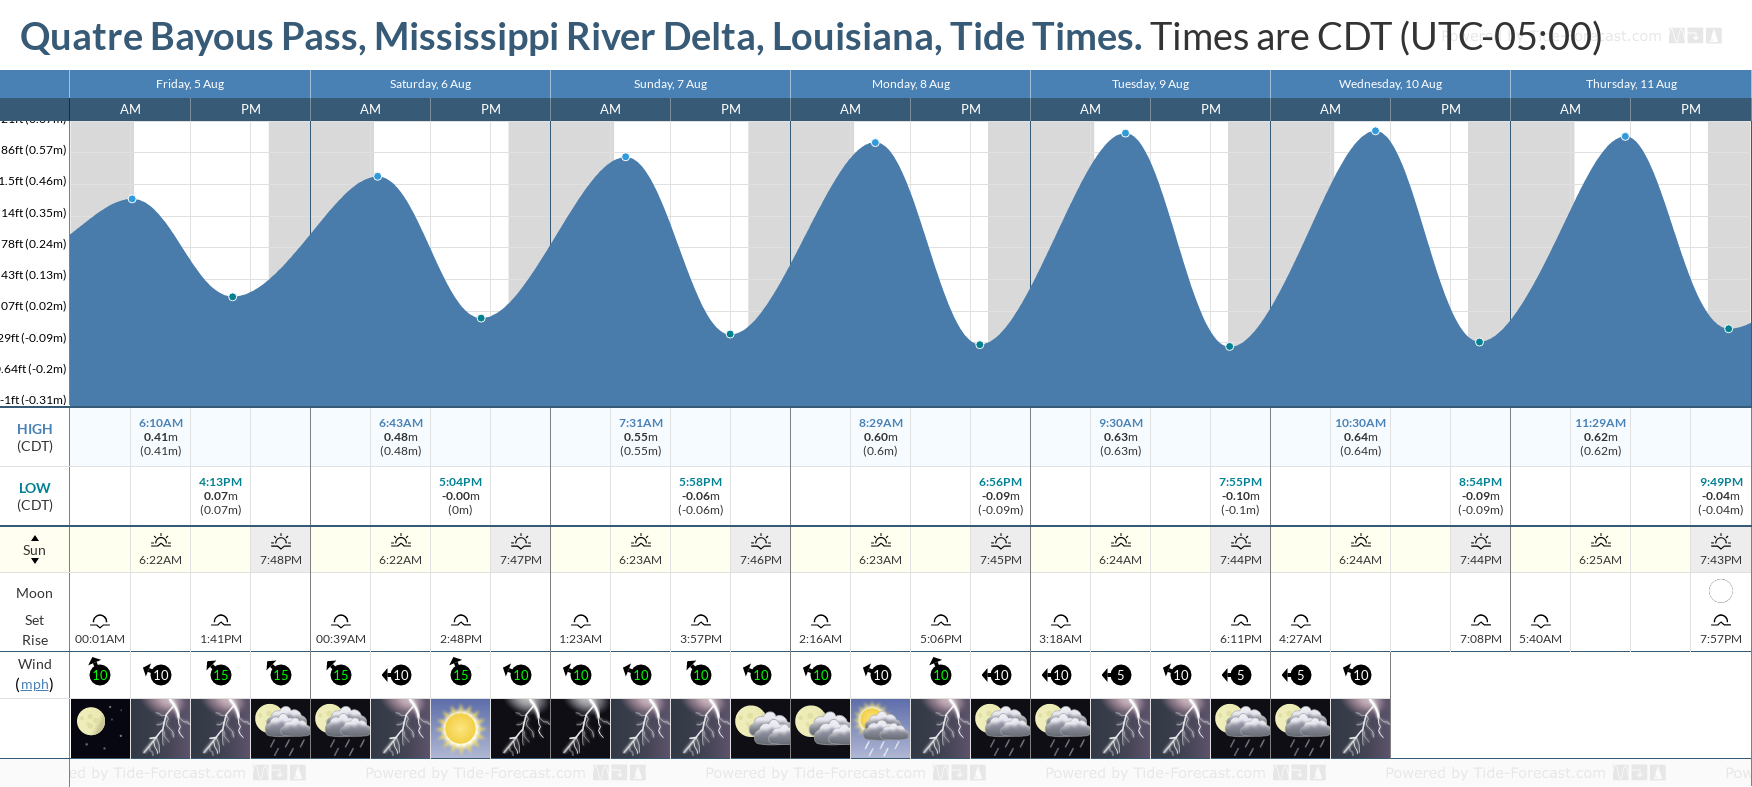 Quatre Bayous Pass, Mississippi River Delta, Louisiana Tide Chart including high and low tide tide times for the next 7 days